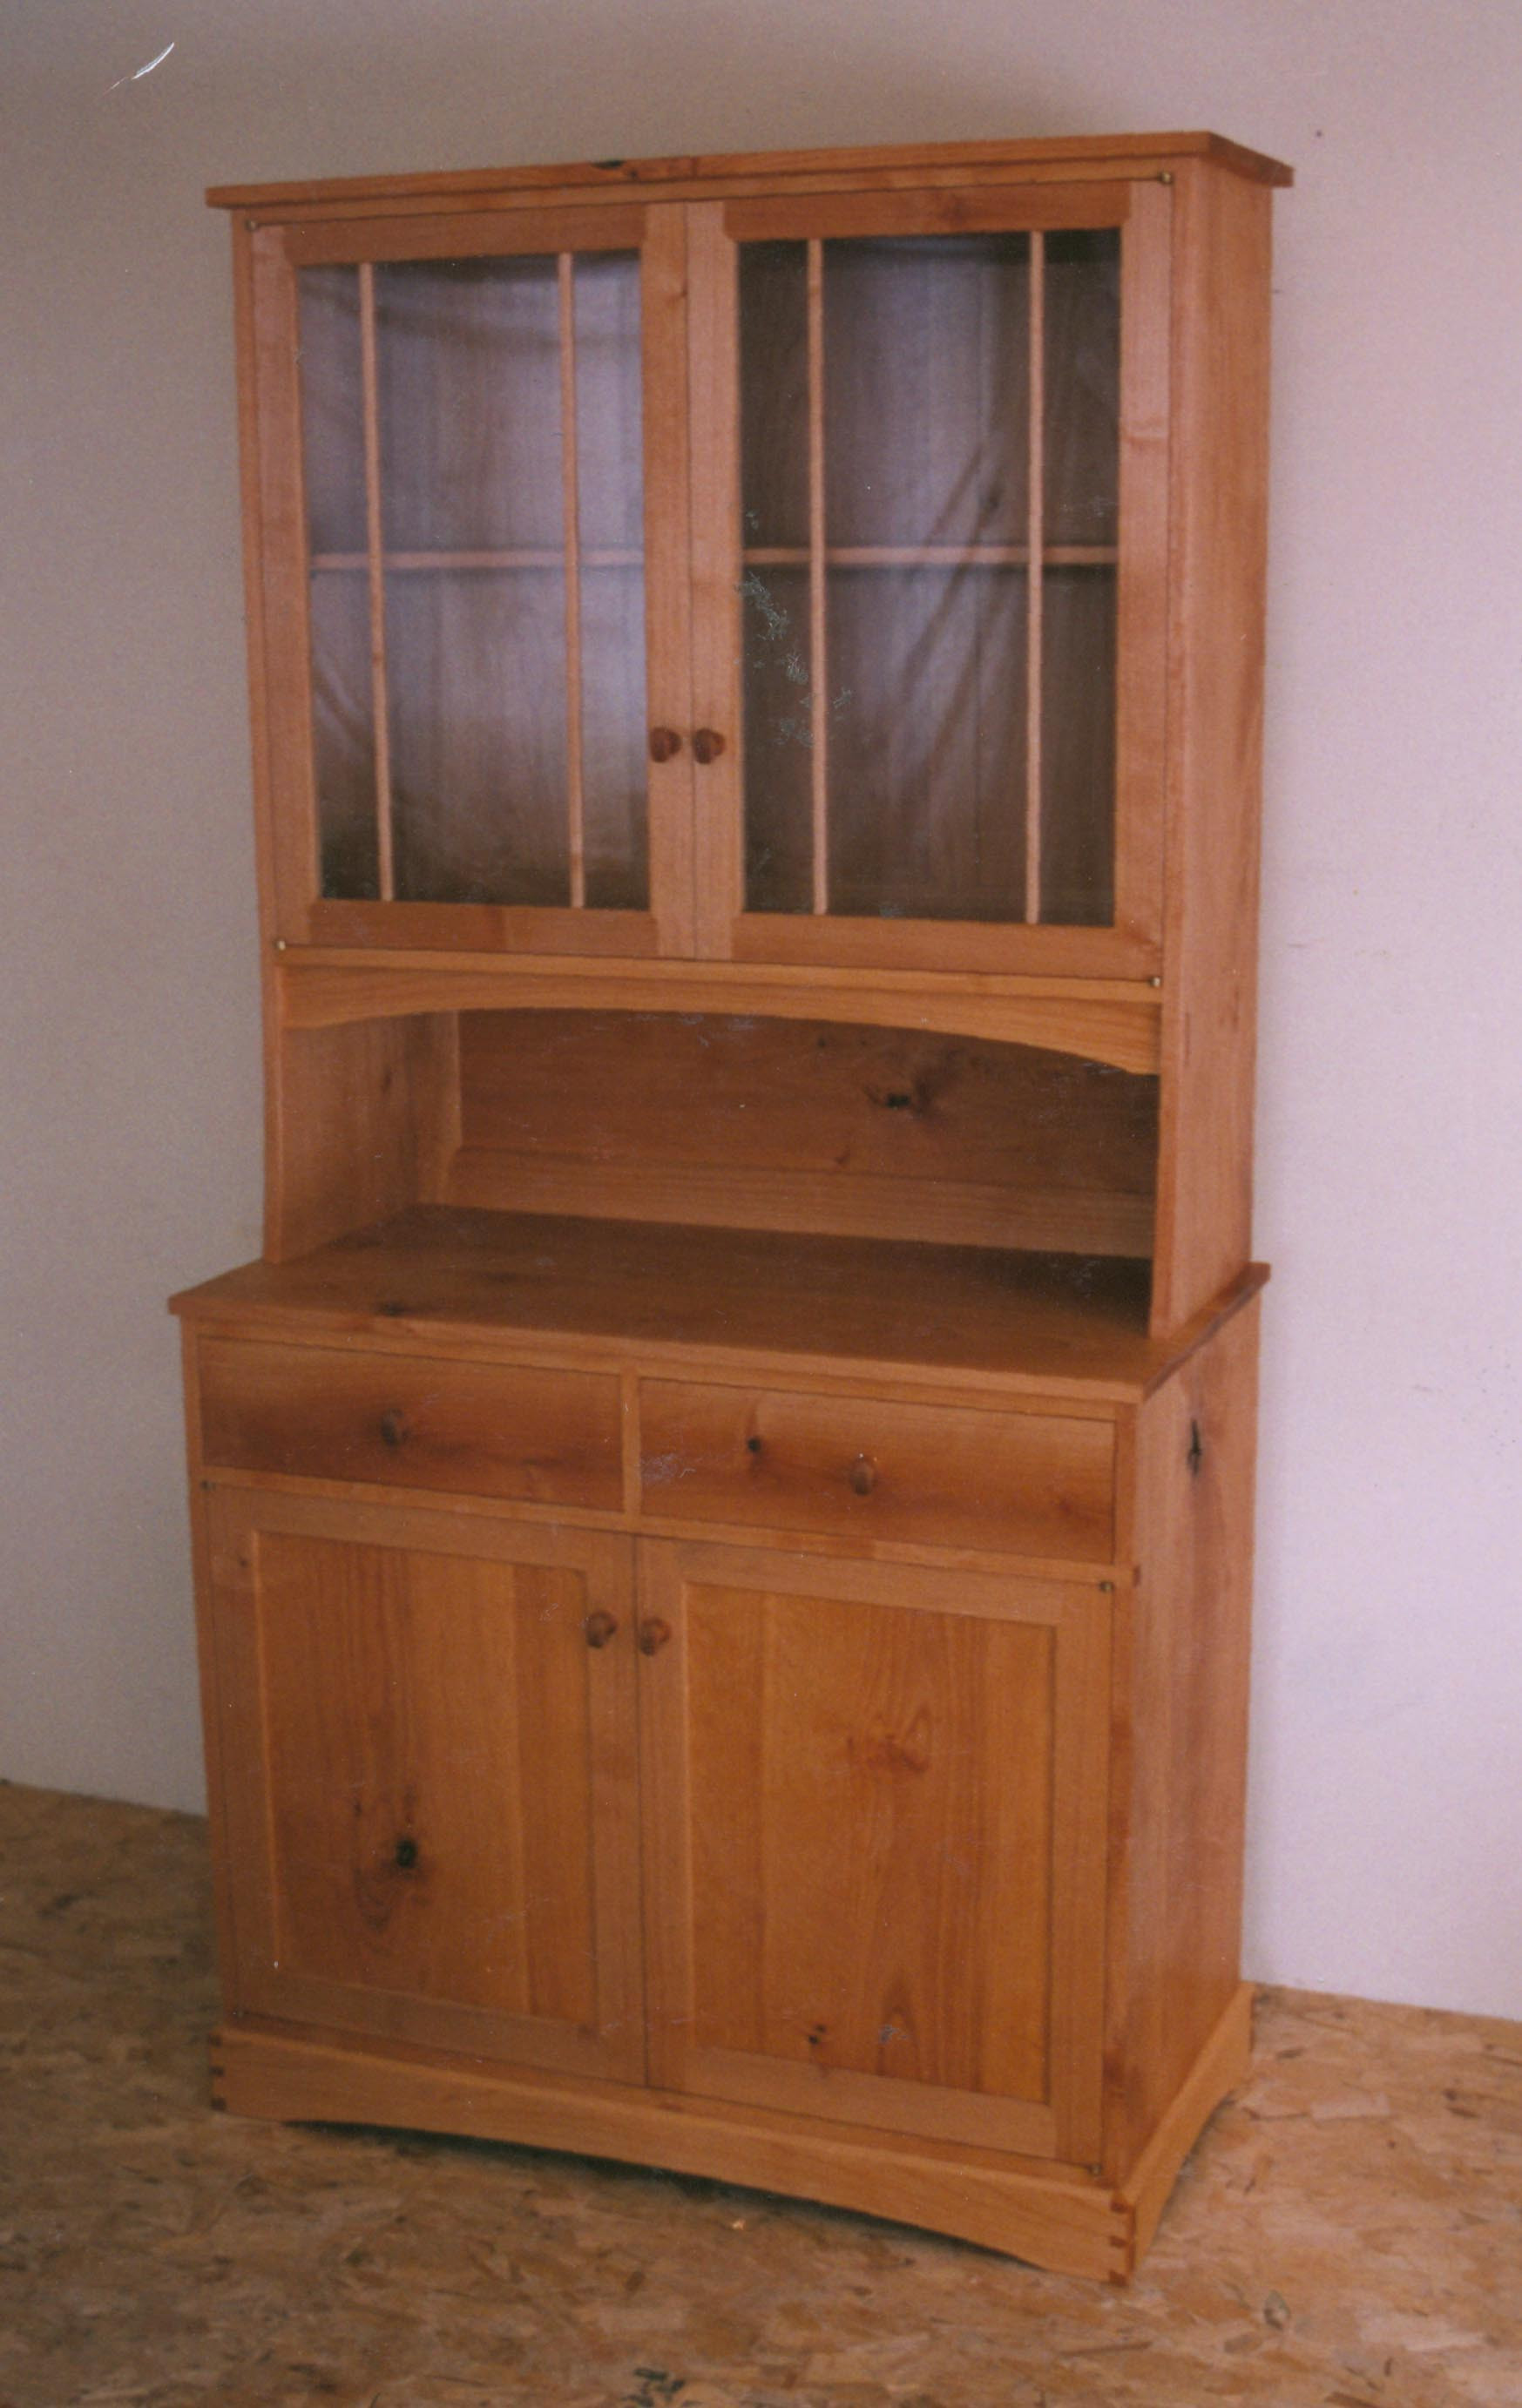 Best ideas about DIY China Cabinet Plans . Save or Pin How To Build A Small China Cabinet Plans DIY Free Download Now.